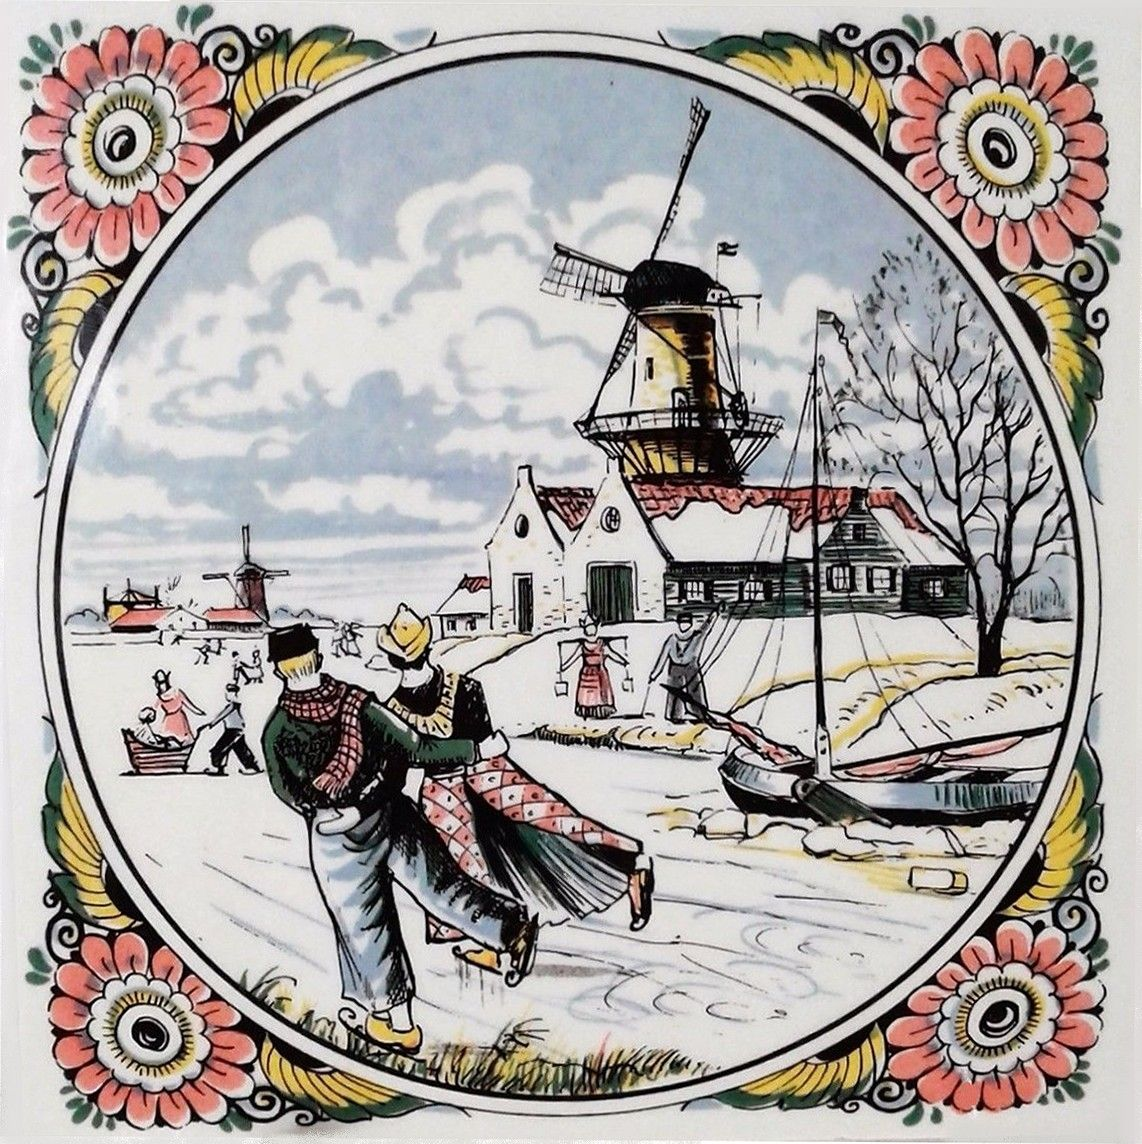 Delft Handmade Tile. Skaters with Windmill. Made in Holland